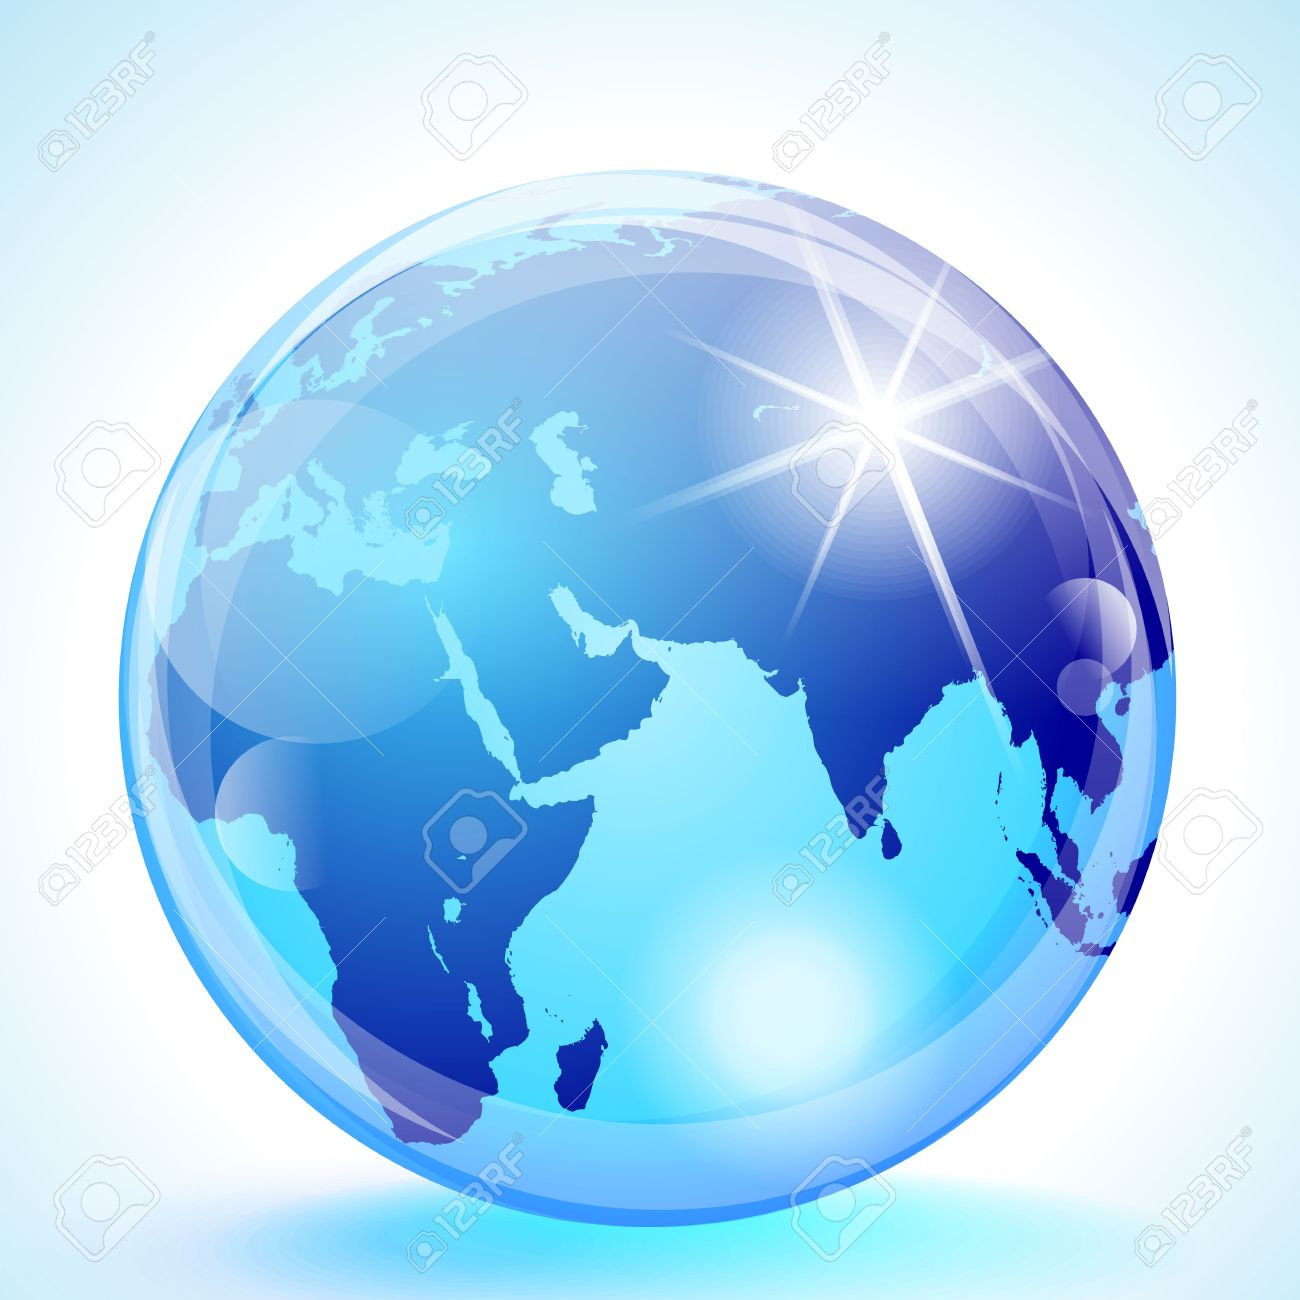 Blue Marble Globe Showing The Europe Africa The Indian Ocean